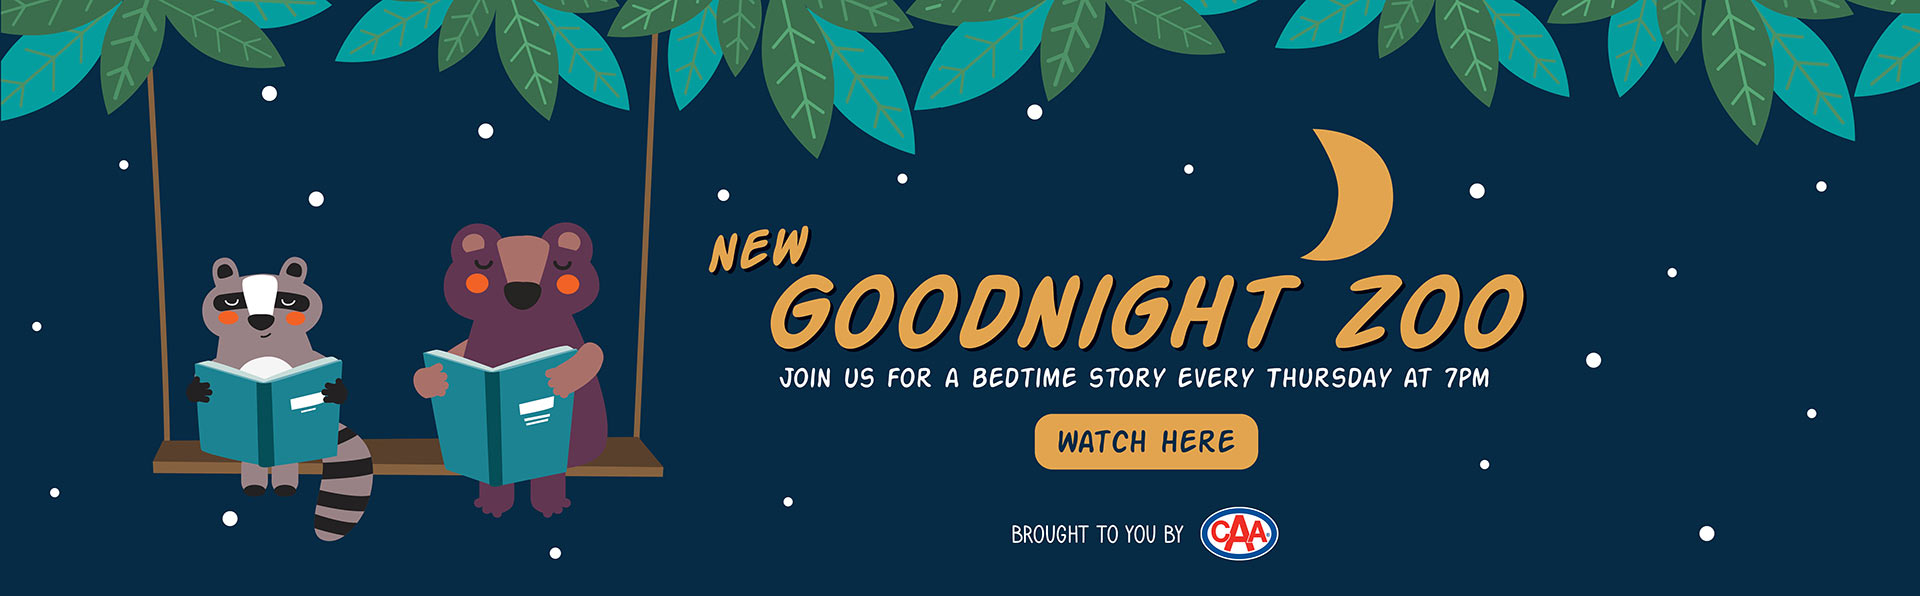 Goodnight Zoo join us for a bedtime story every Thursday at 7pm